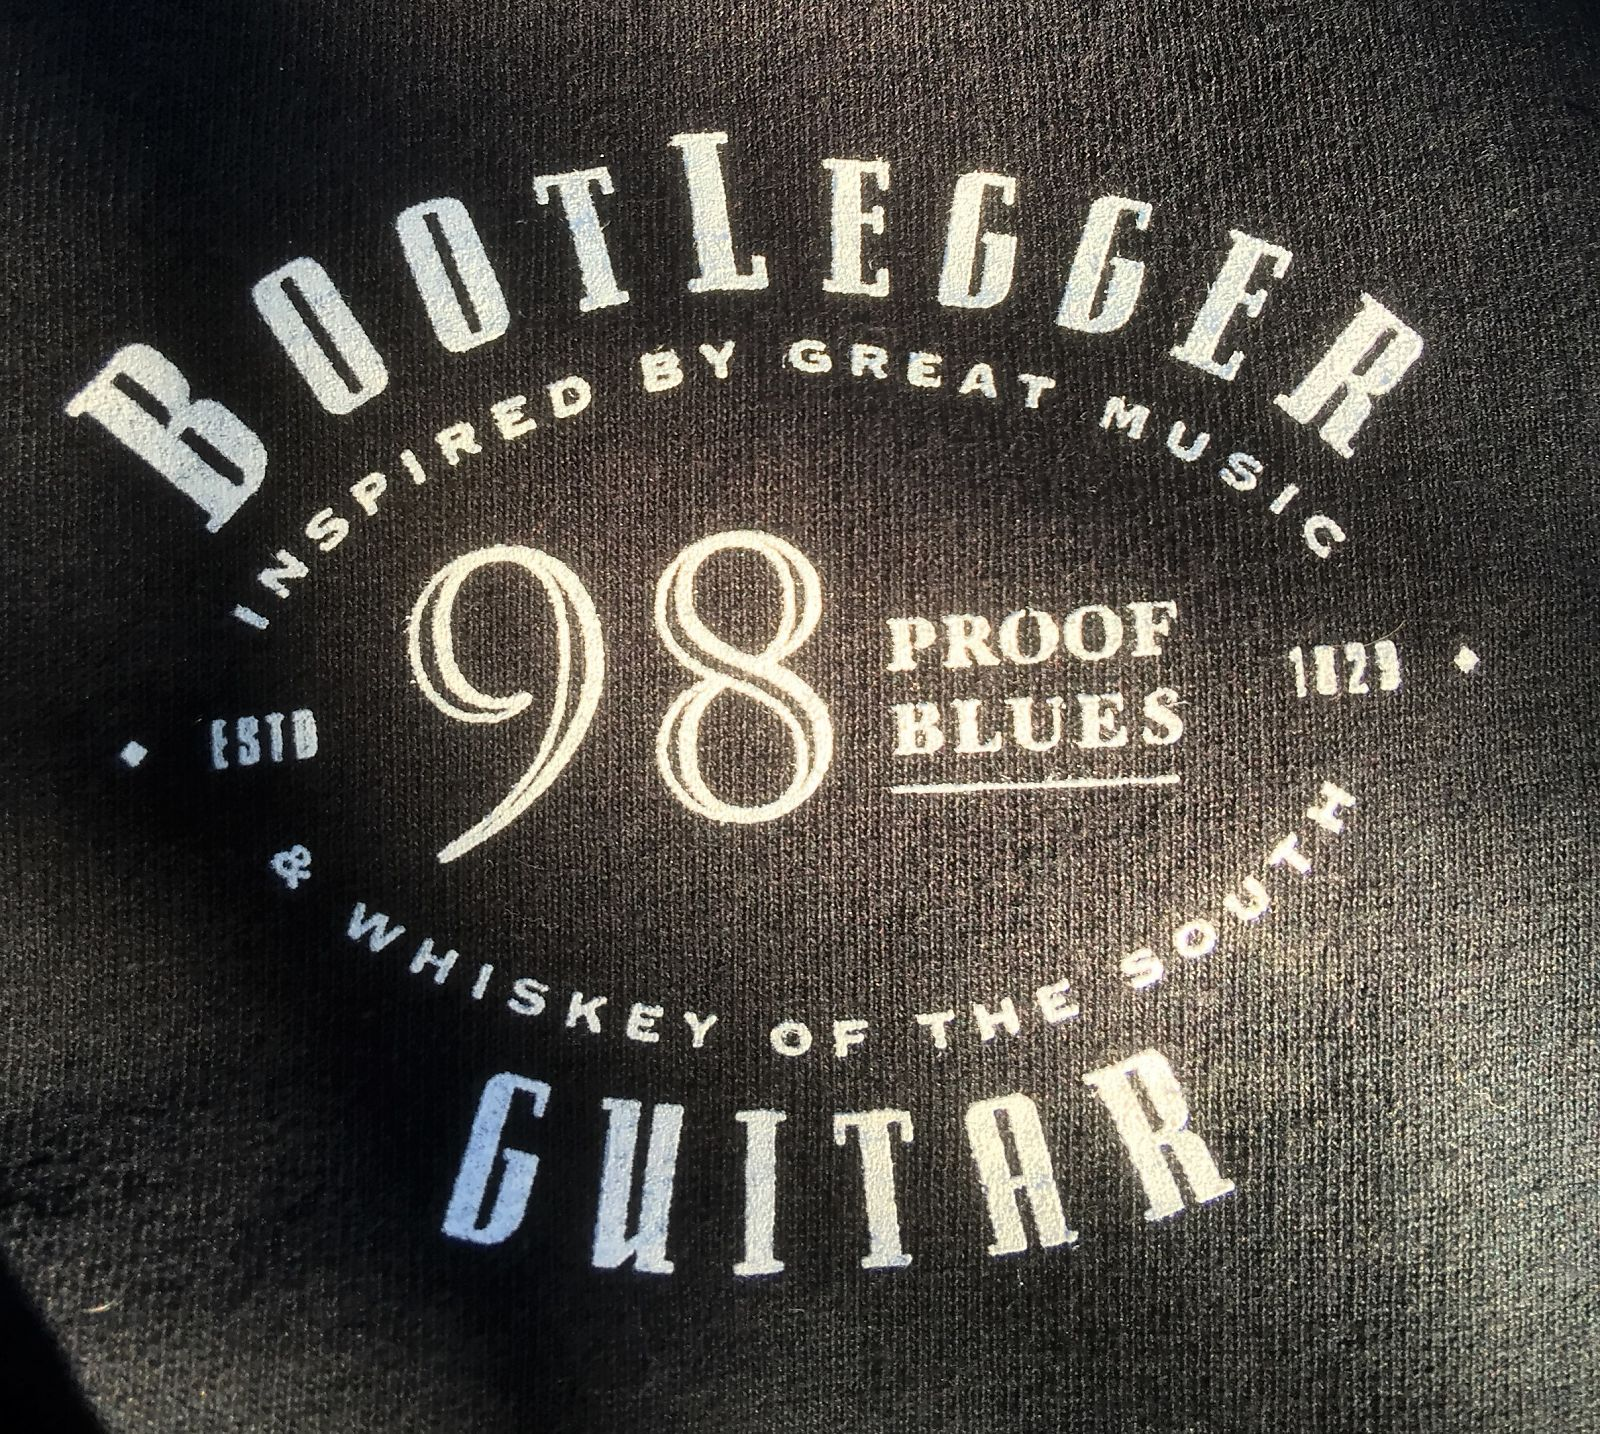 Bootlegger  T shirt 98 Proof